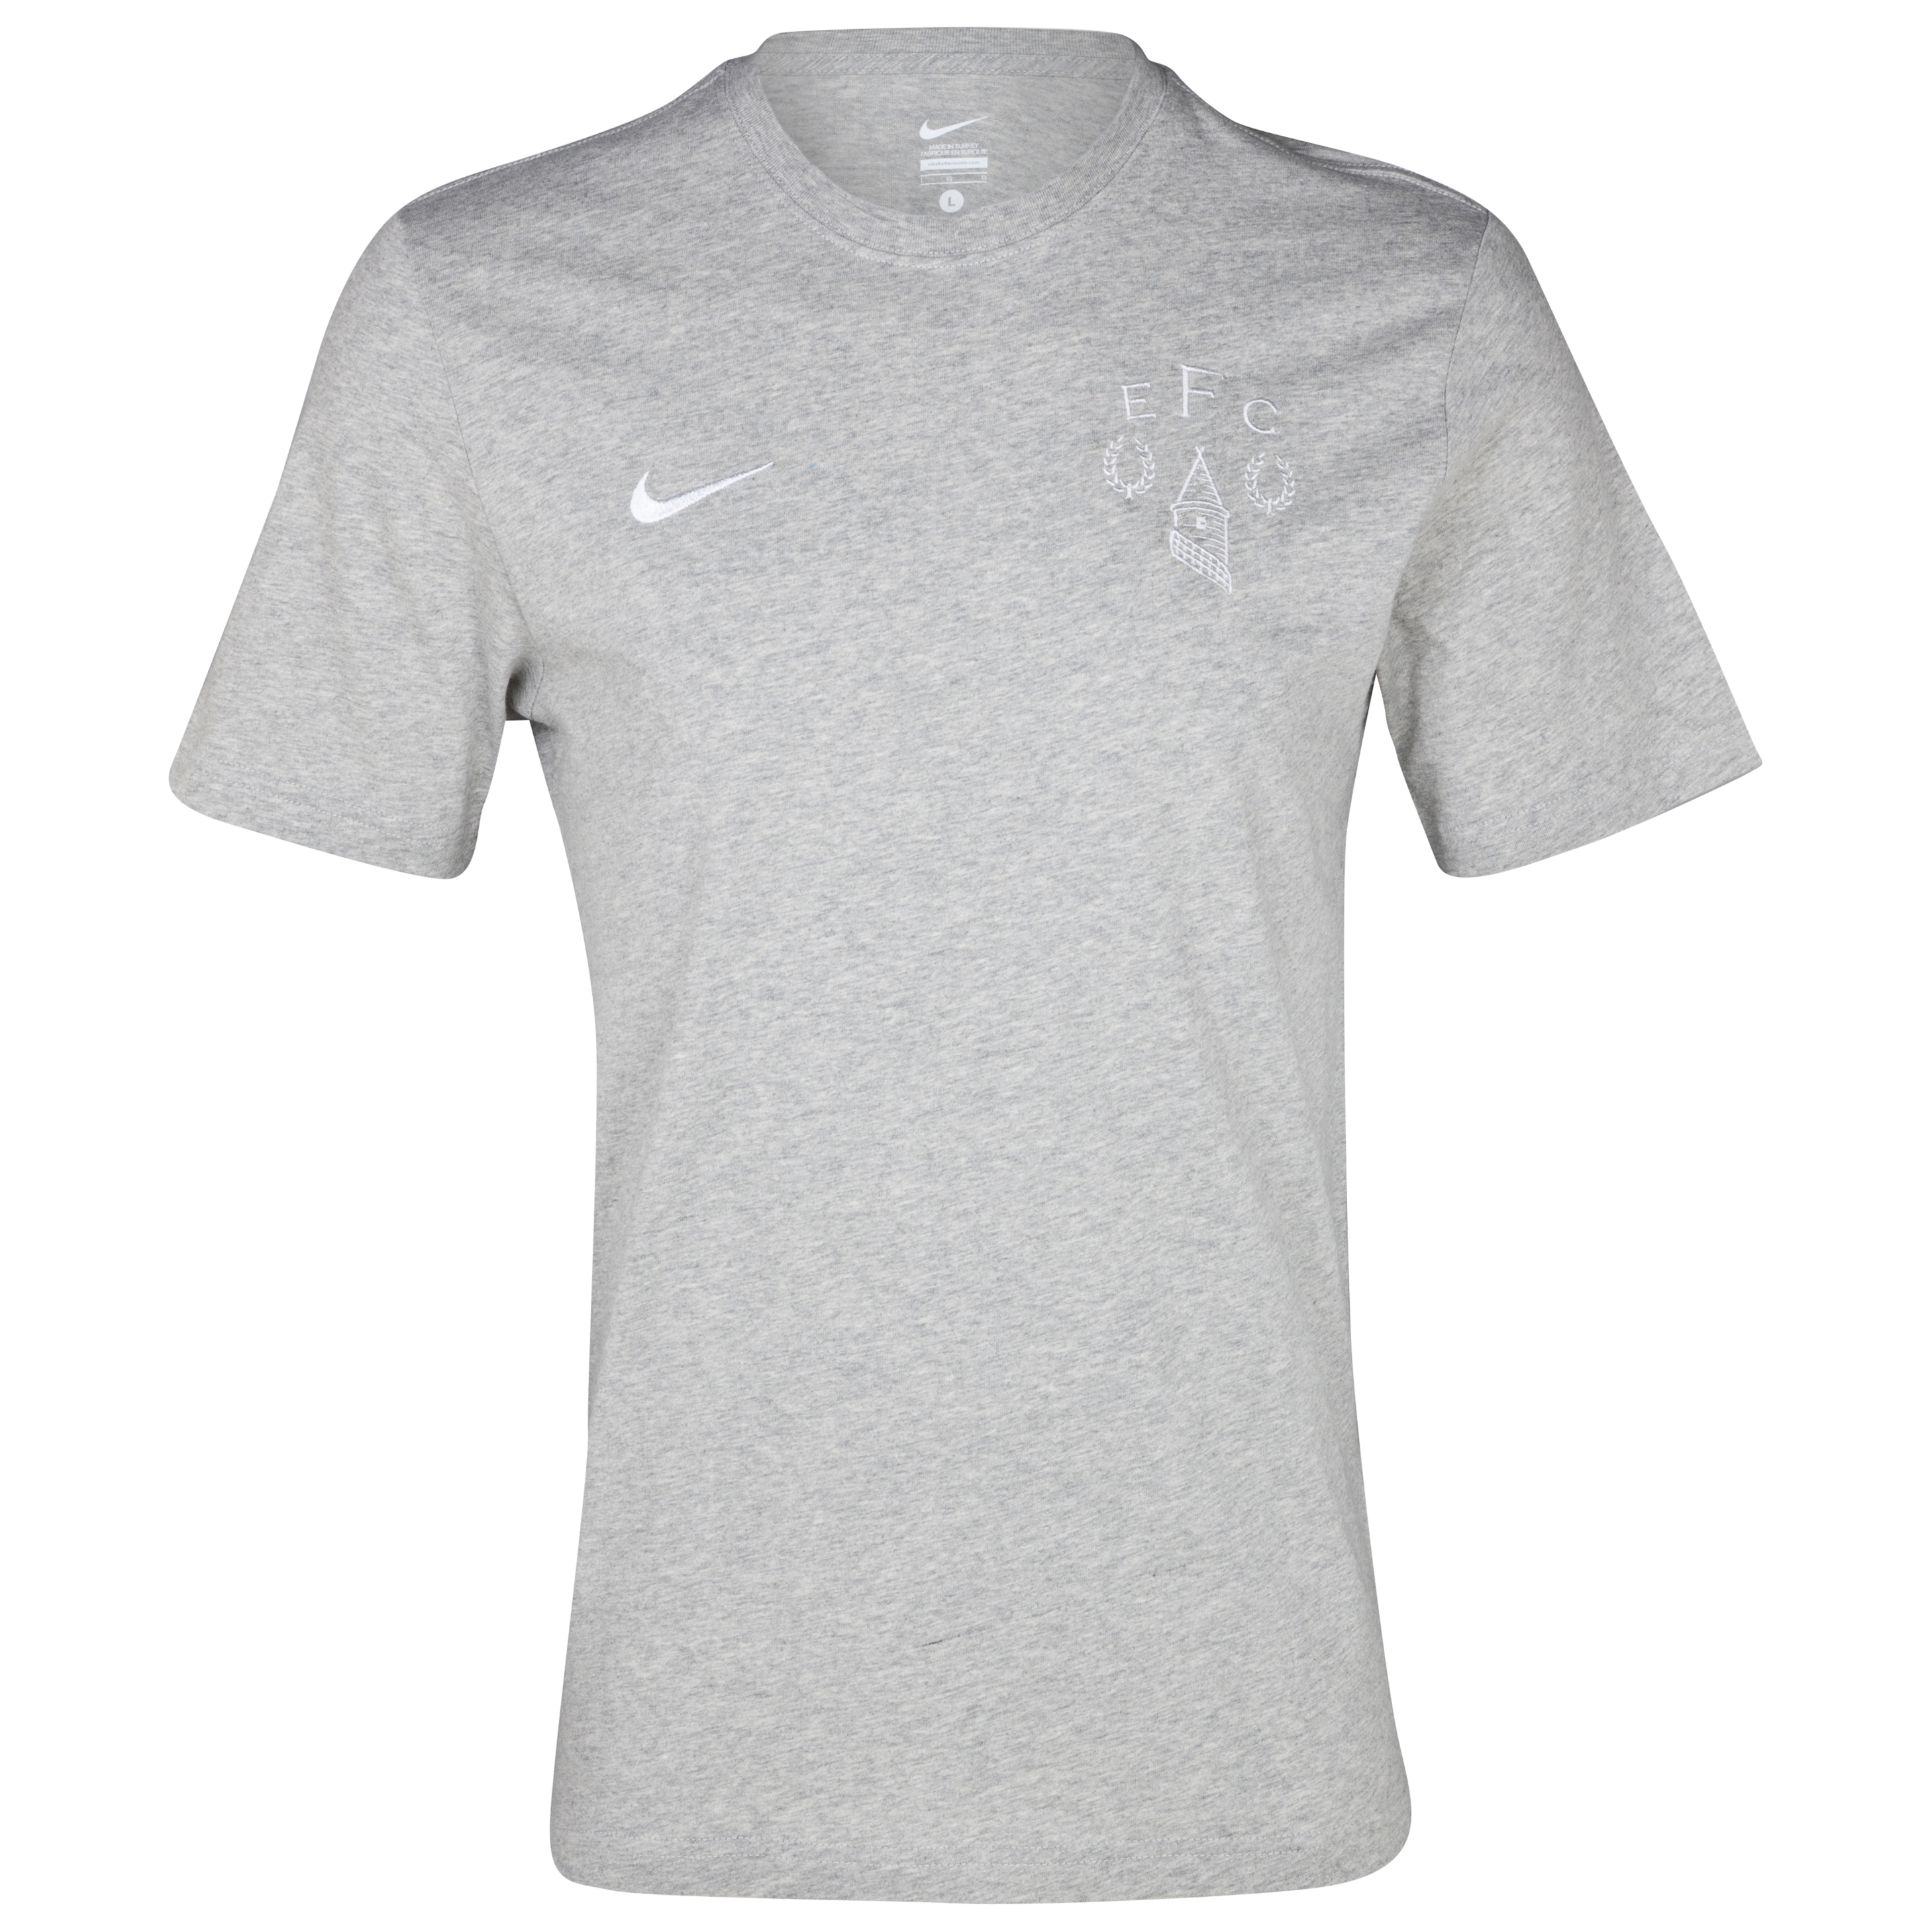 Everton Heritage T-Shirt - Junior - Grey Heather/White